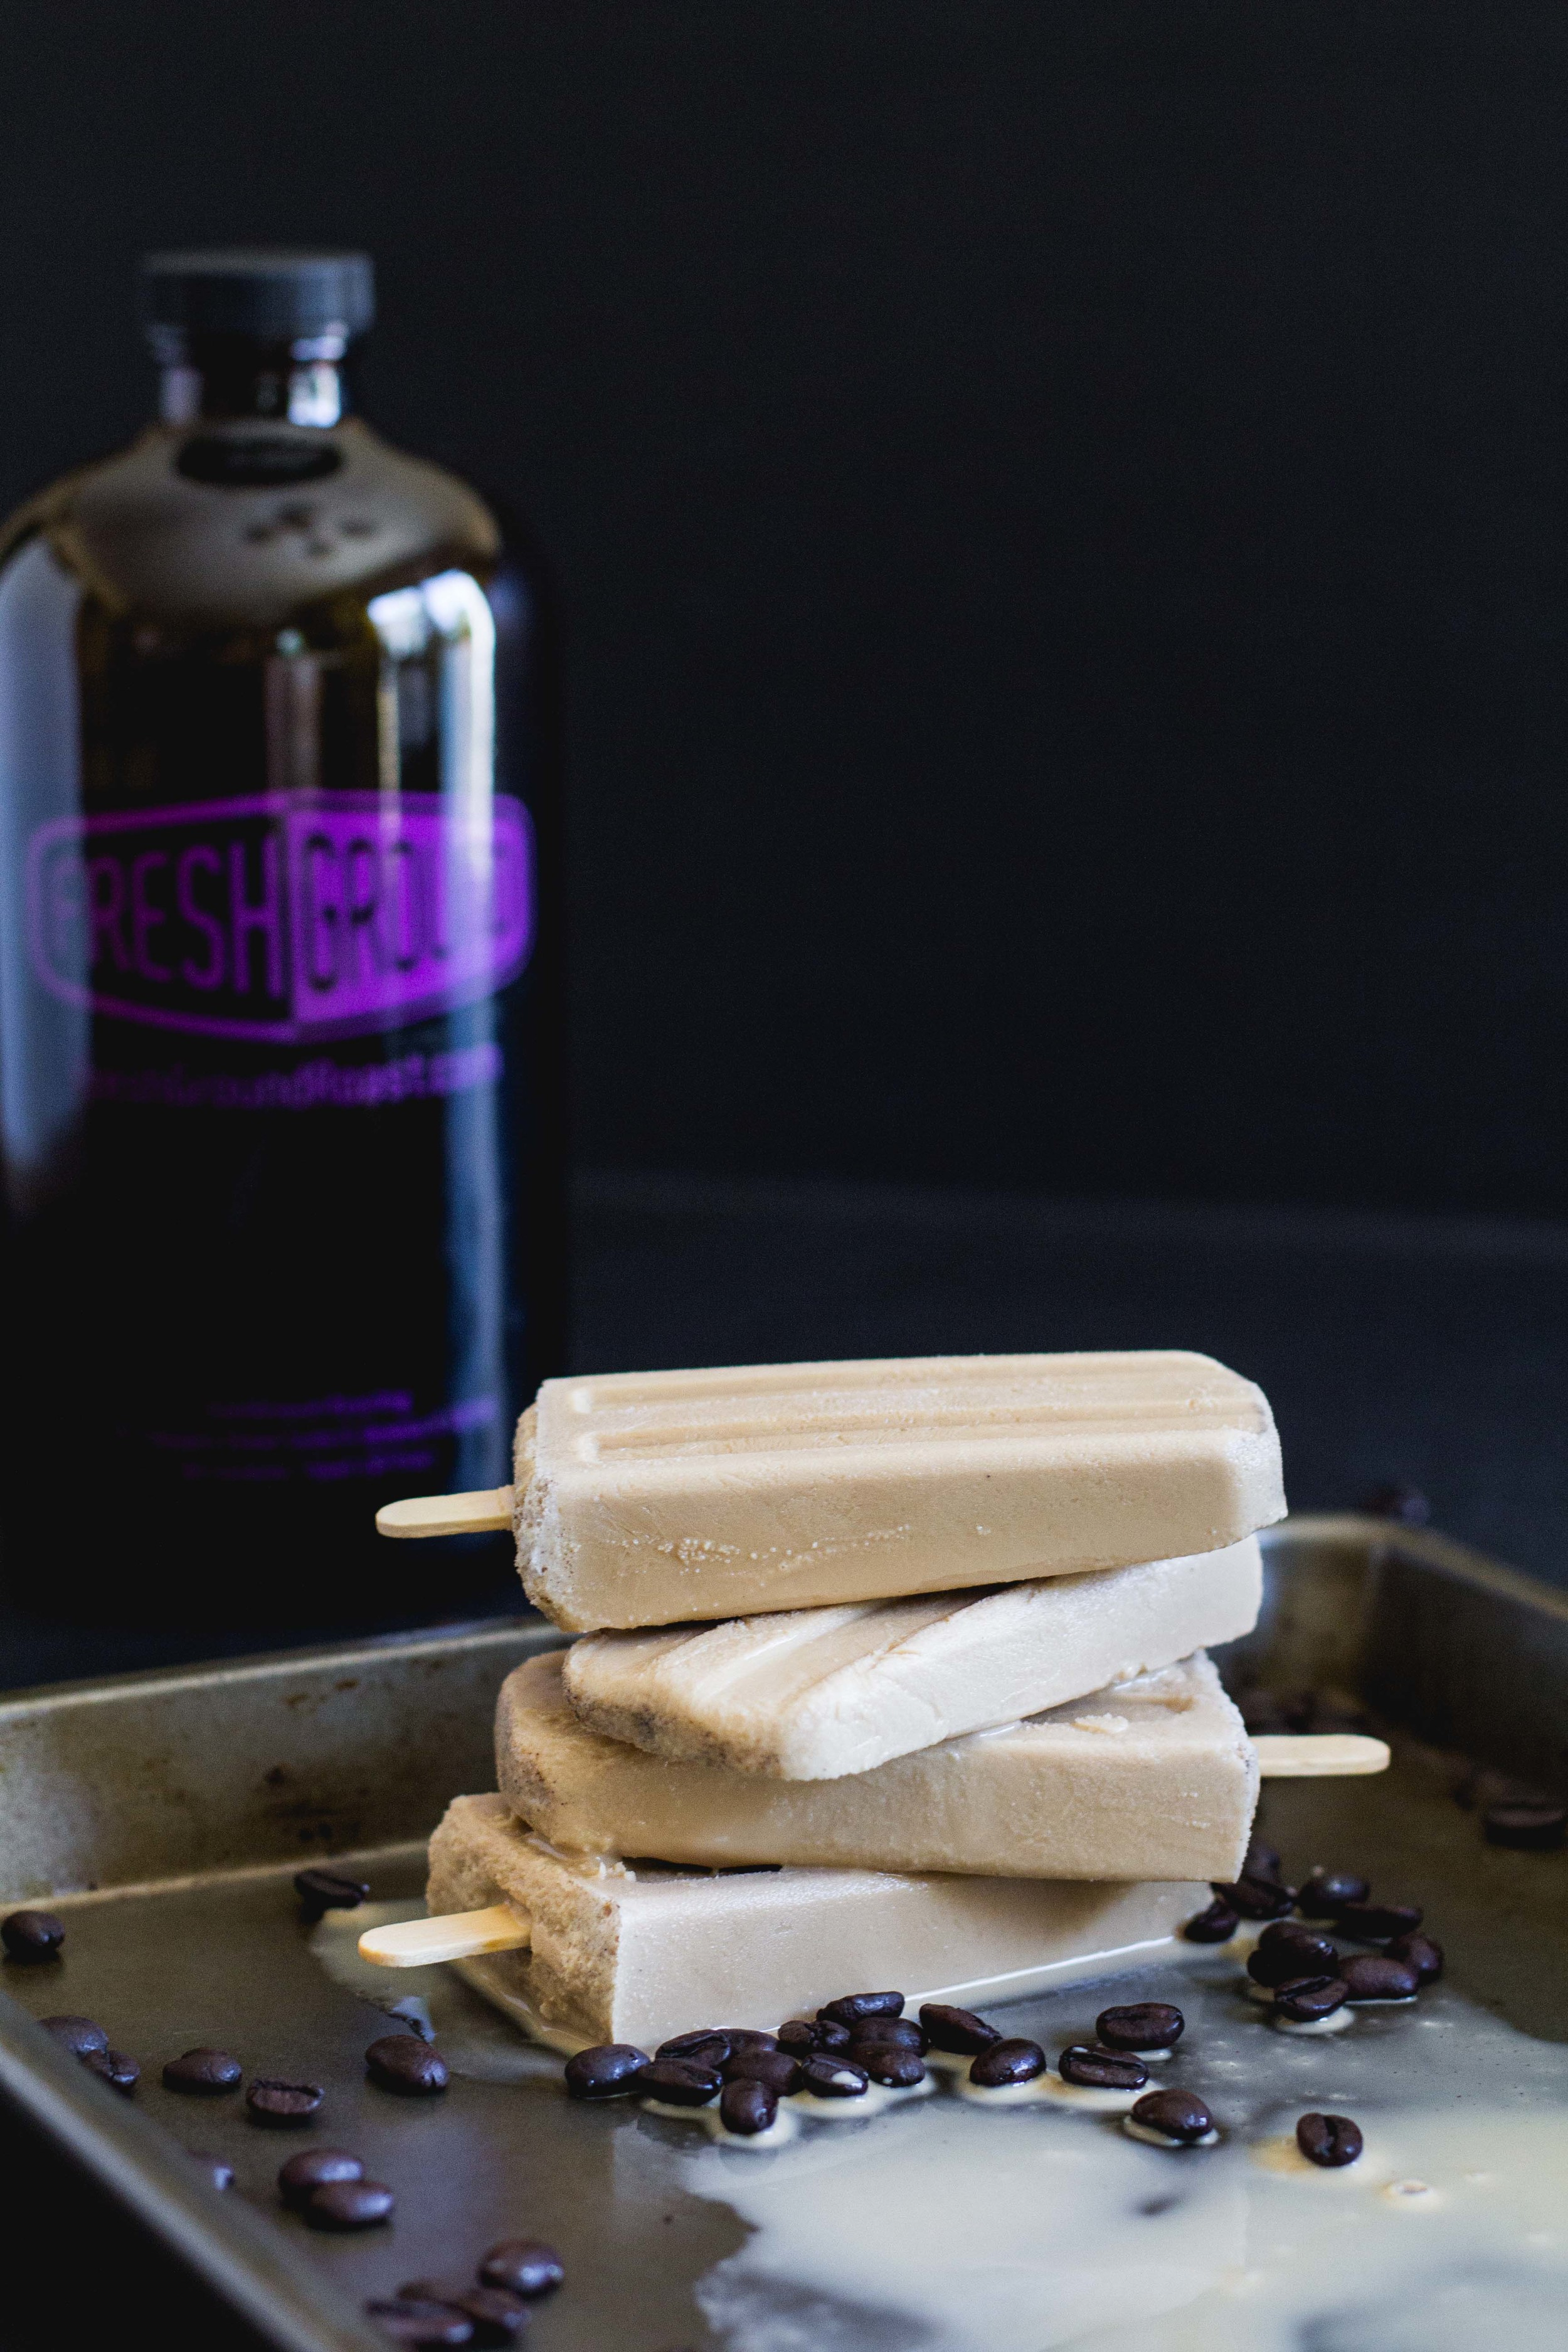 Coffee + Cardamom Popsicles — Get the recipe for this perfect, easy summer treat that takes only a few ingredients! It's made with cold brew coffee and a hint of cardamom. They're so good! Head to sarahjhauser.com! | Sarah J. Hauser | Food, Faith, Creativity + Motherhood #coldbrew #coffee #popsicles